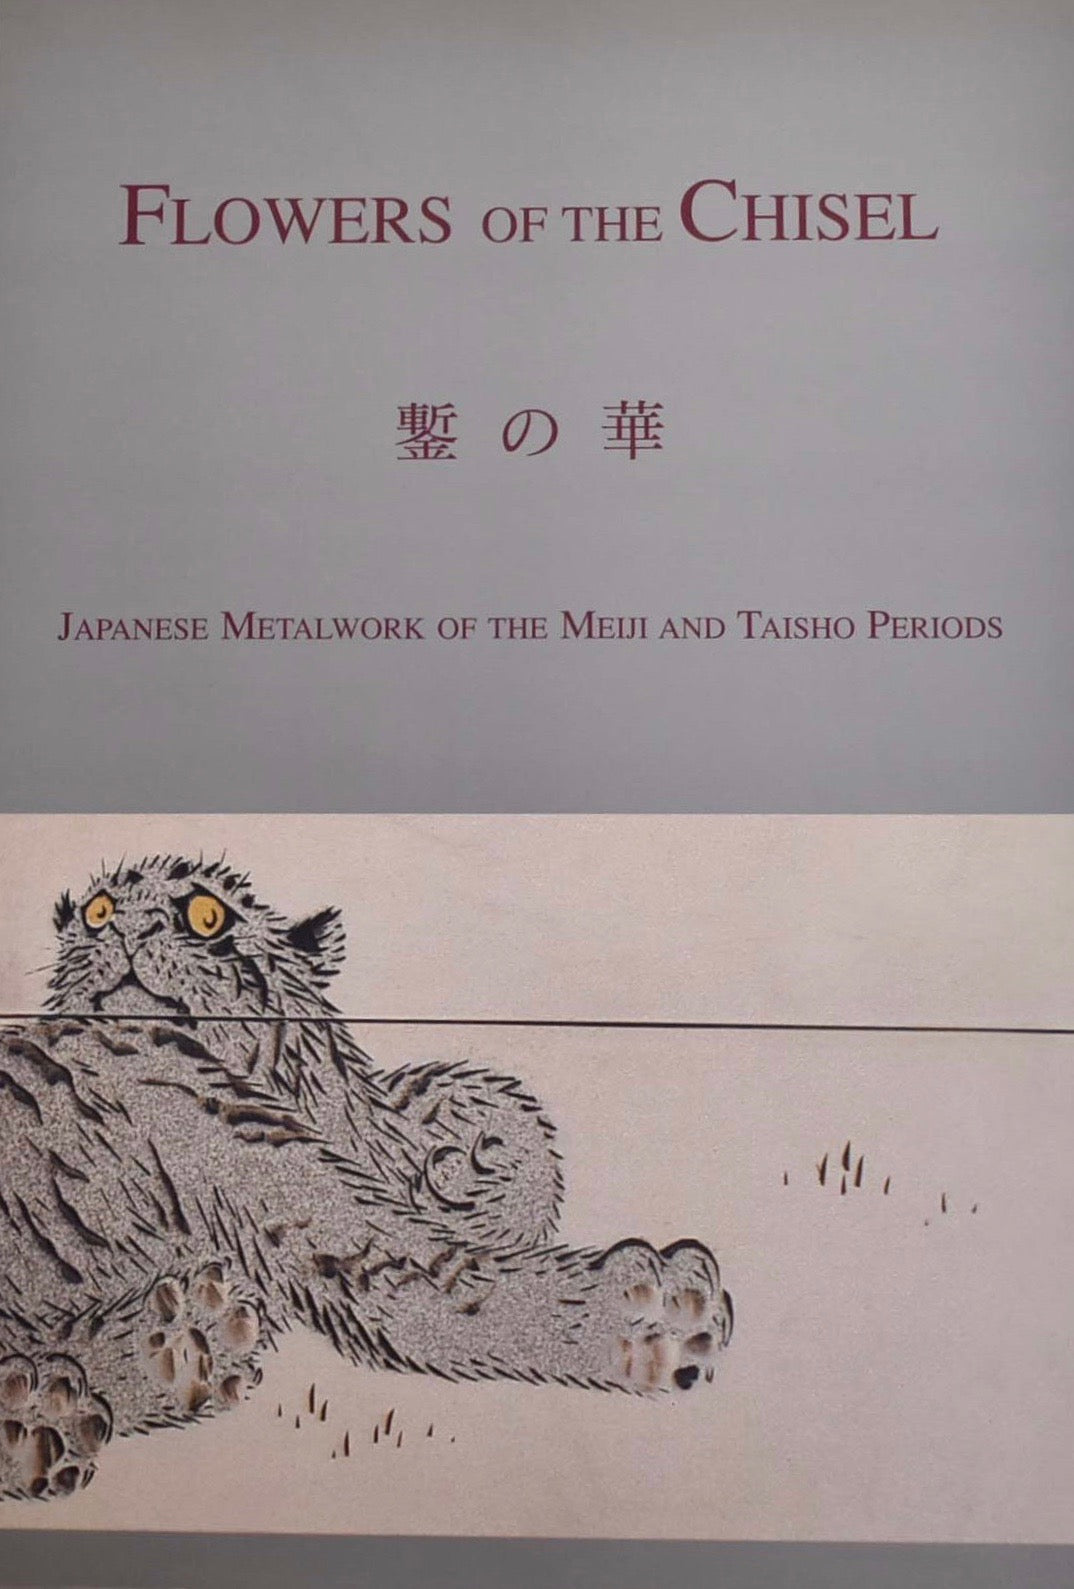 Flowers of the Chisel: Japanese Metalwork of the Meiji and Taisho Periods by Malcolm Faieley